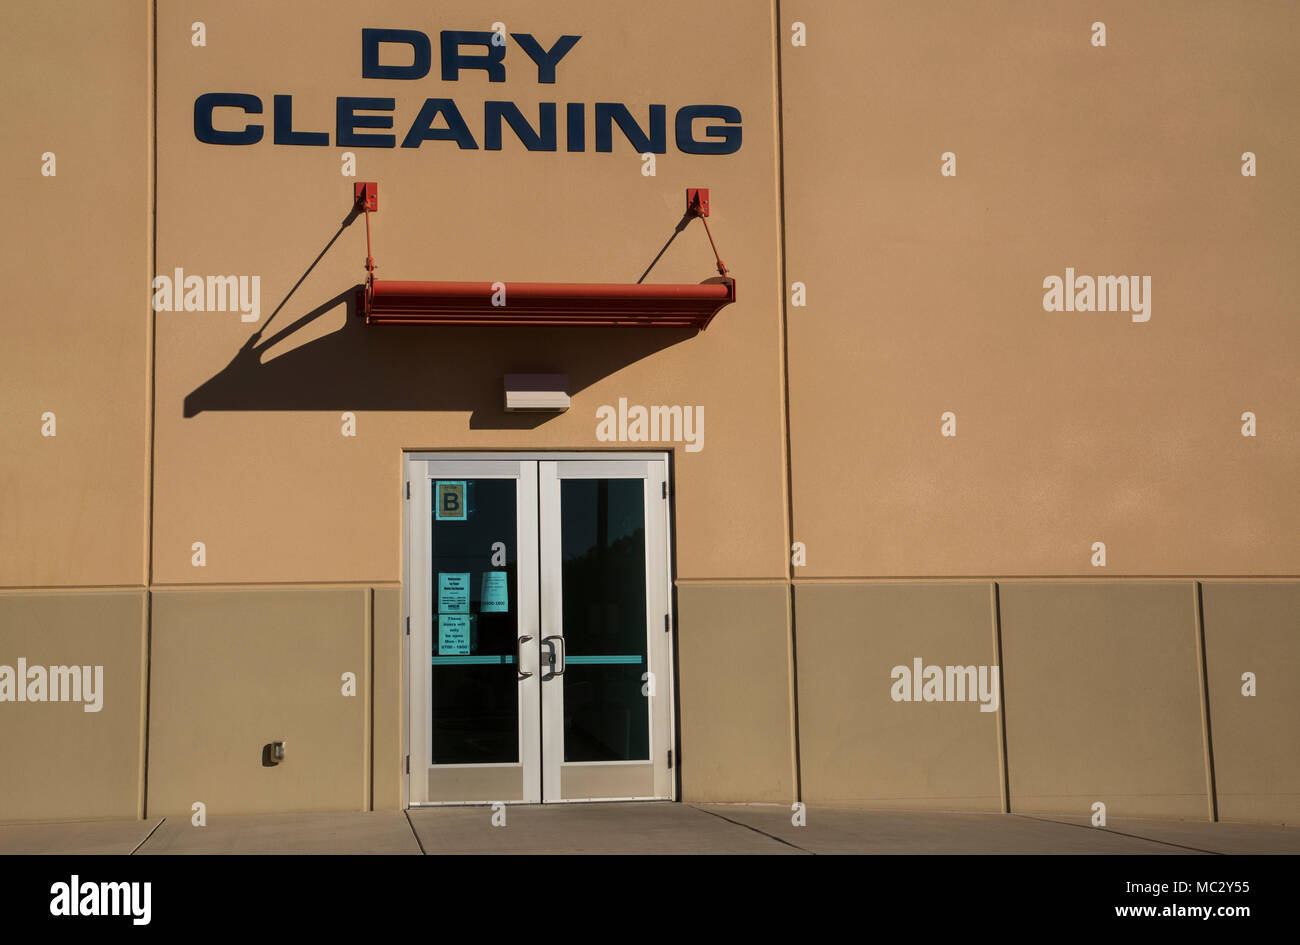 Dry Cleaned Stock Photos & Dry Cleaned Stock Images - Alamy